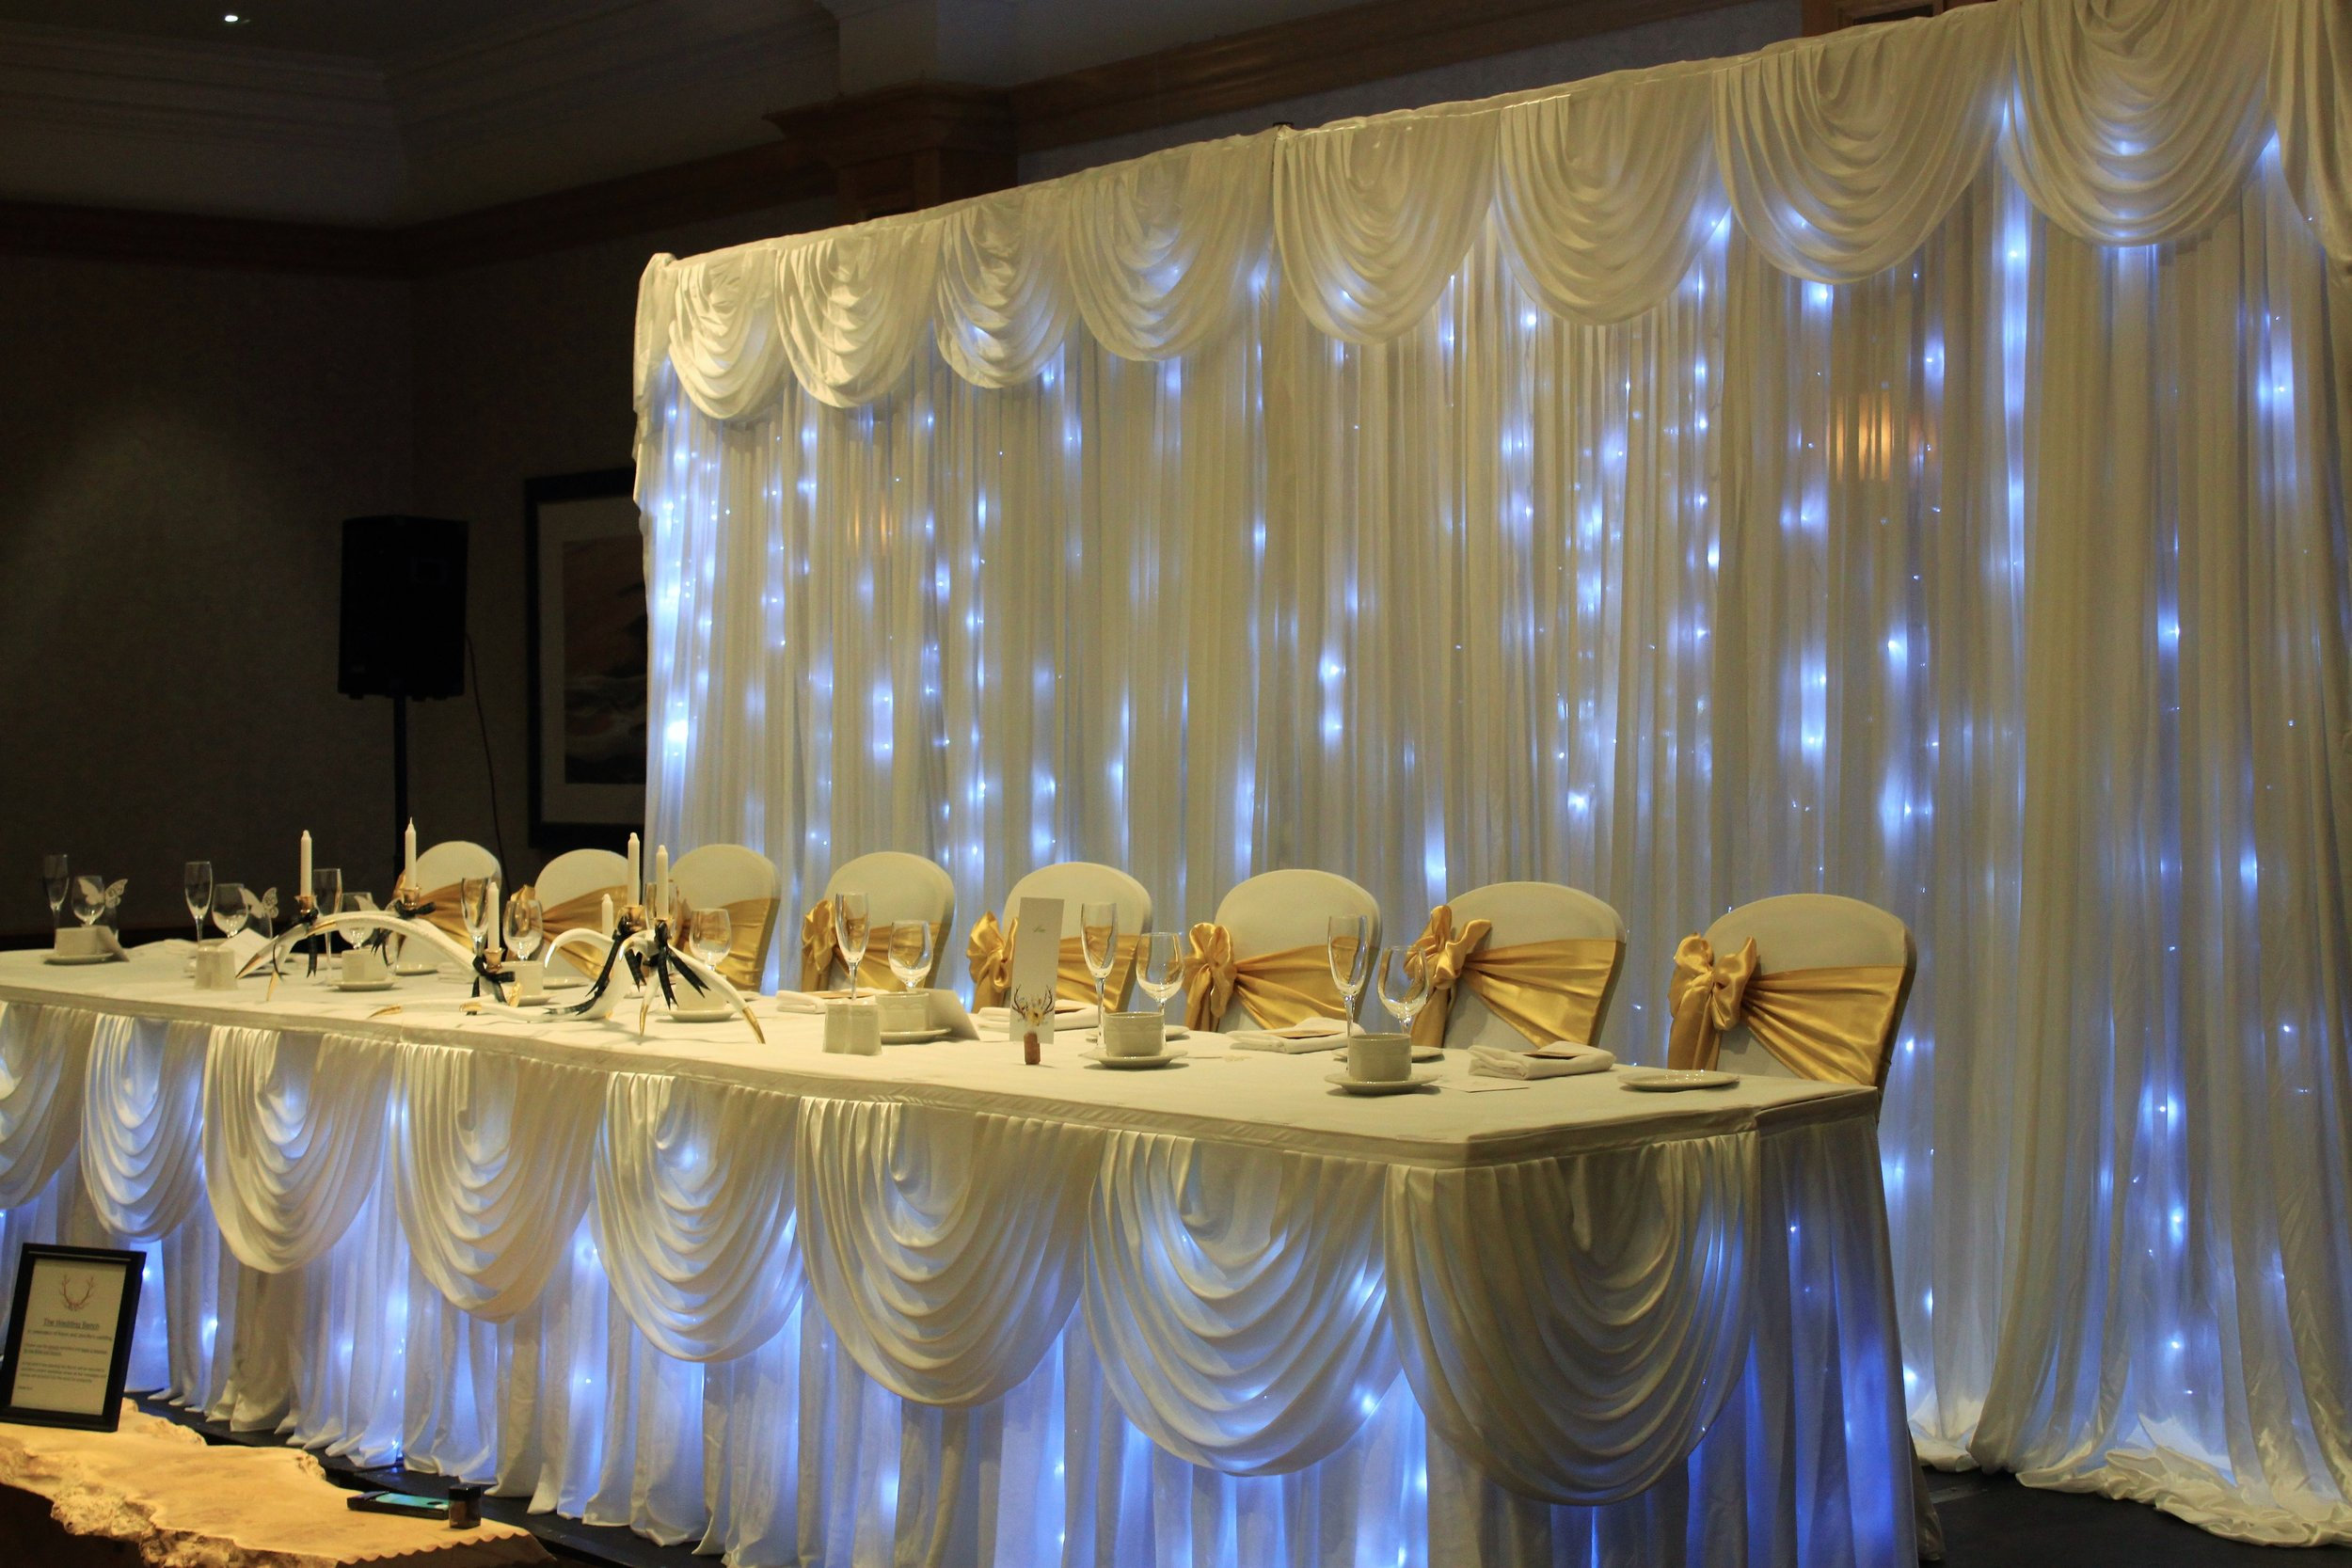 Backdrops - Our luxury satin backdrop pipe and drape system comes in 3m sections and can also cover large wall areas up to an impressive 24m and 4m high, complete with swags.Hire 3m for £150, 6m for £200, simply add 3m sections at £50 each for larger areas.